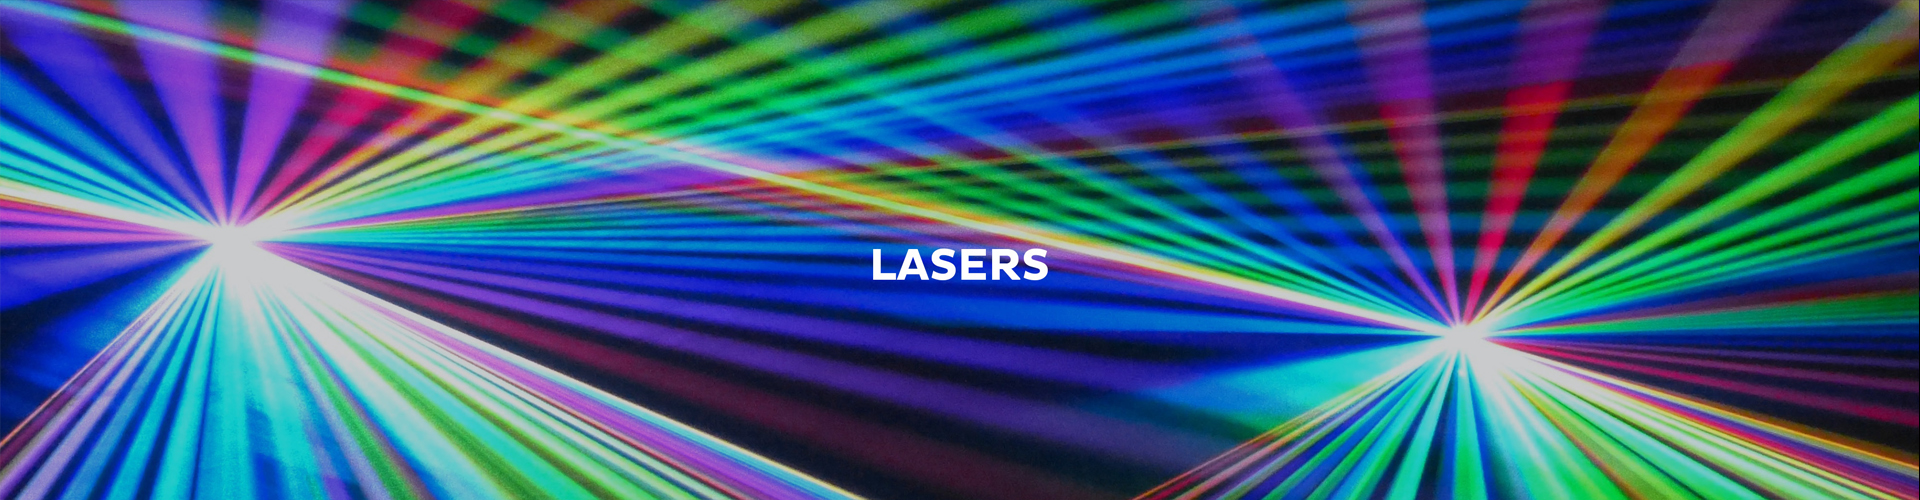 LASER-FINAL-new-size-2